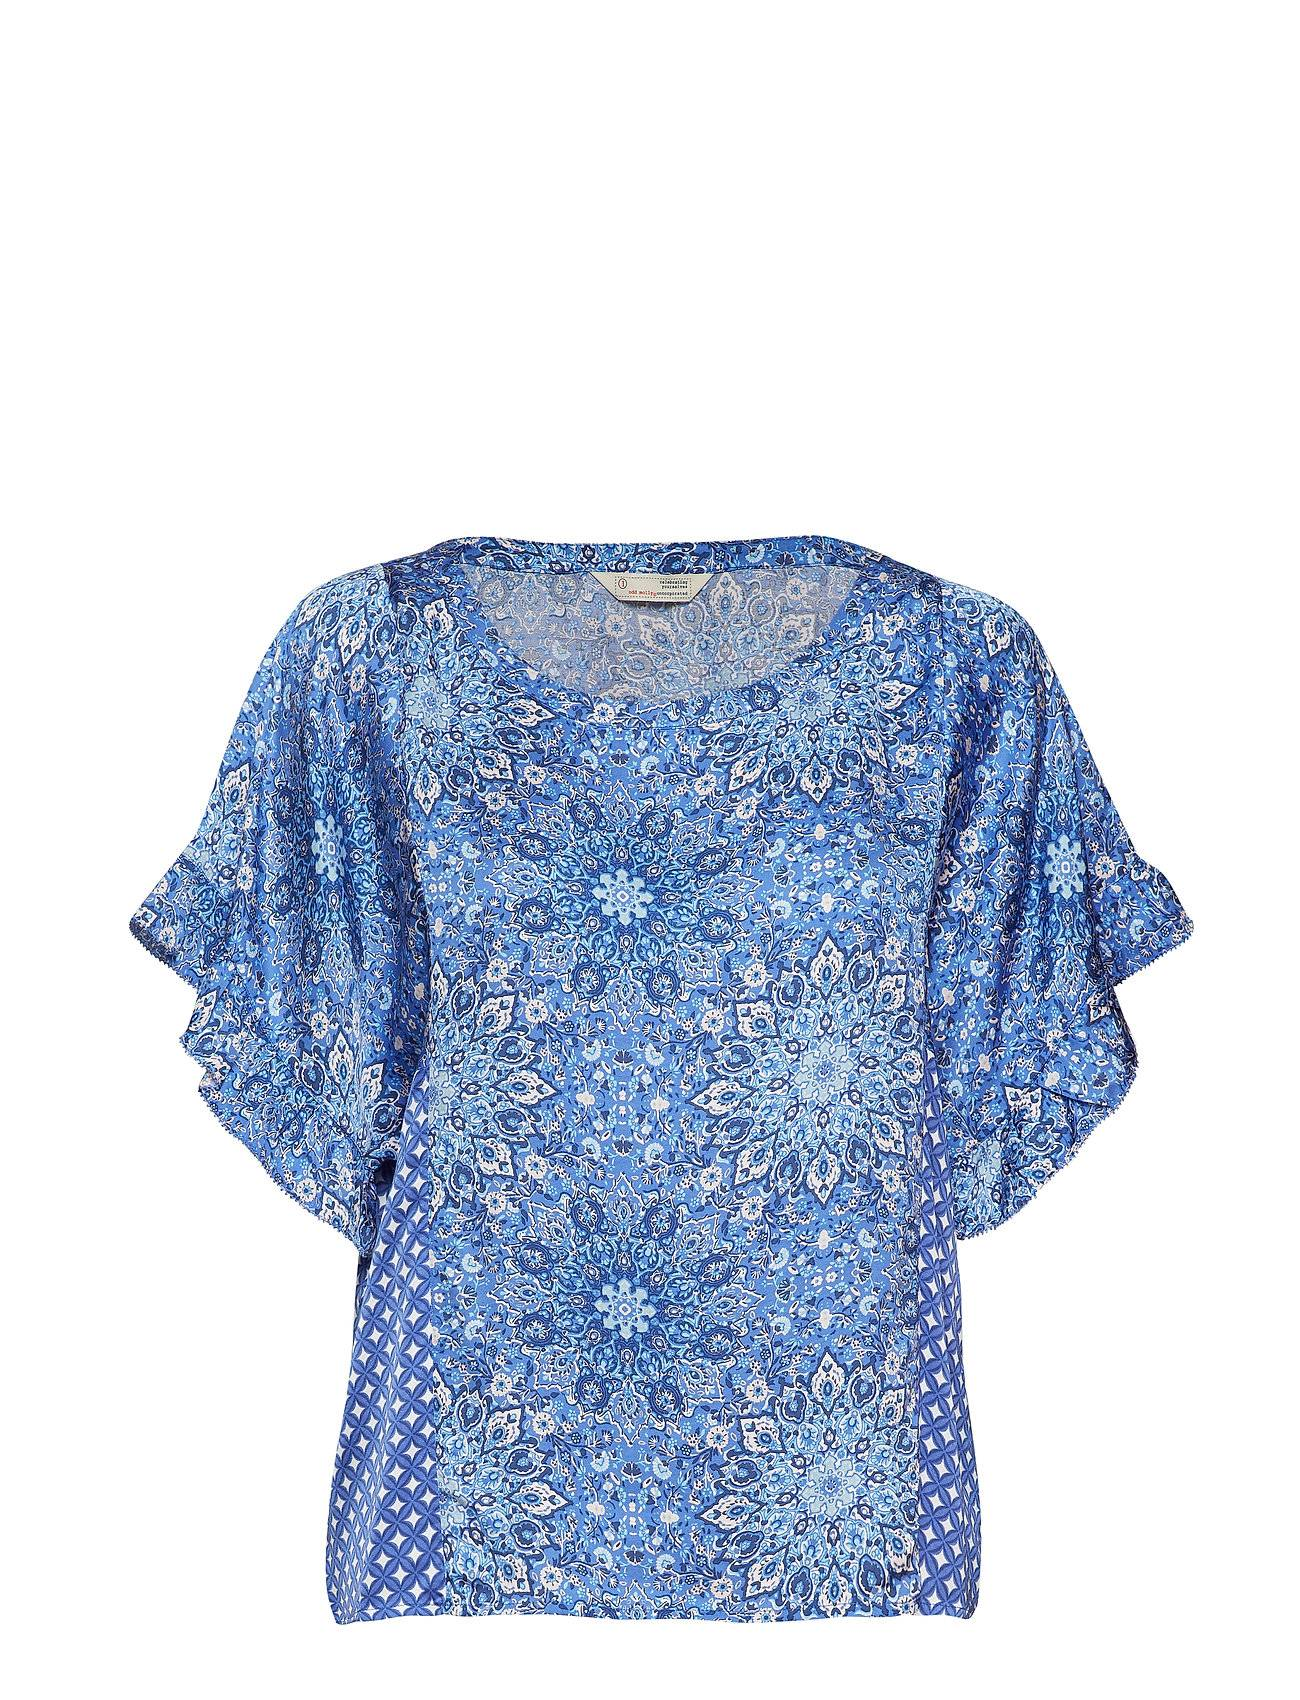 Image of ODD MOLLY Empowher Blouse Blouses Short-sleeved Sininen ODD MOLLY